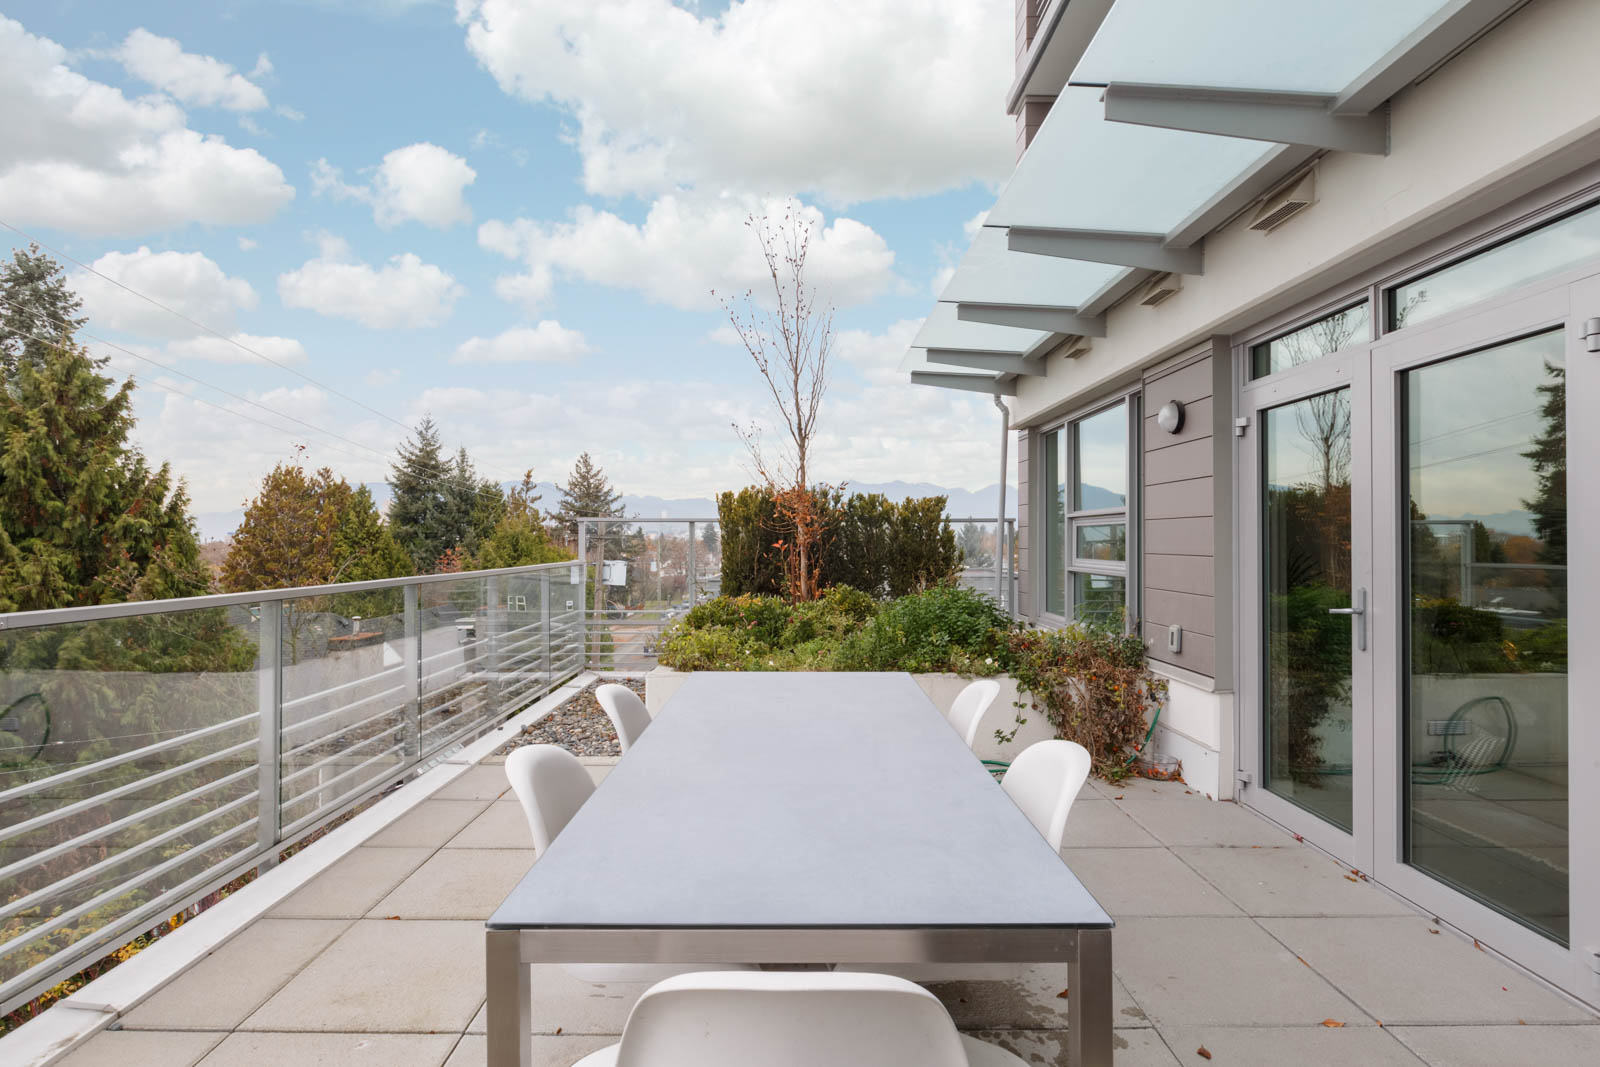 rectangular patio table with four white chairs on large condo patio with bright sky and clouds